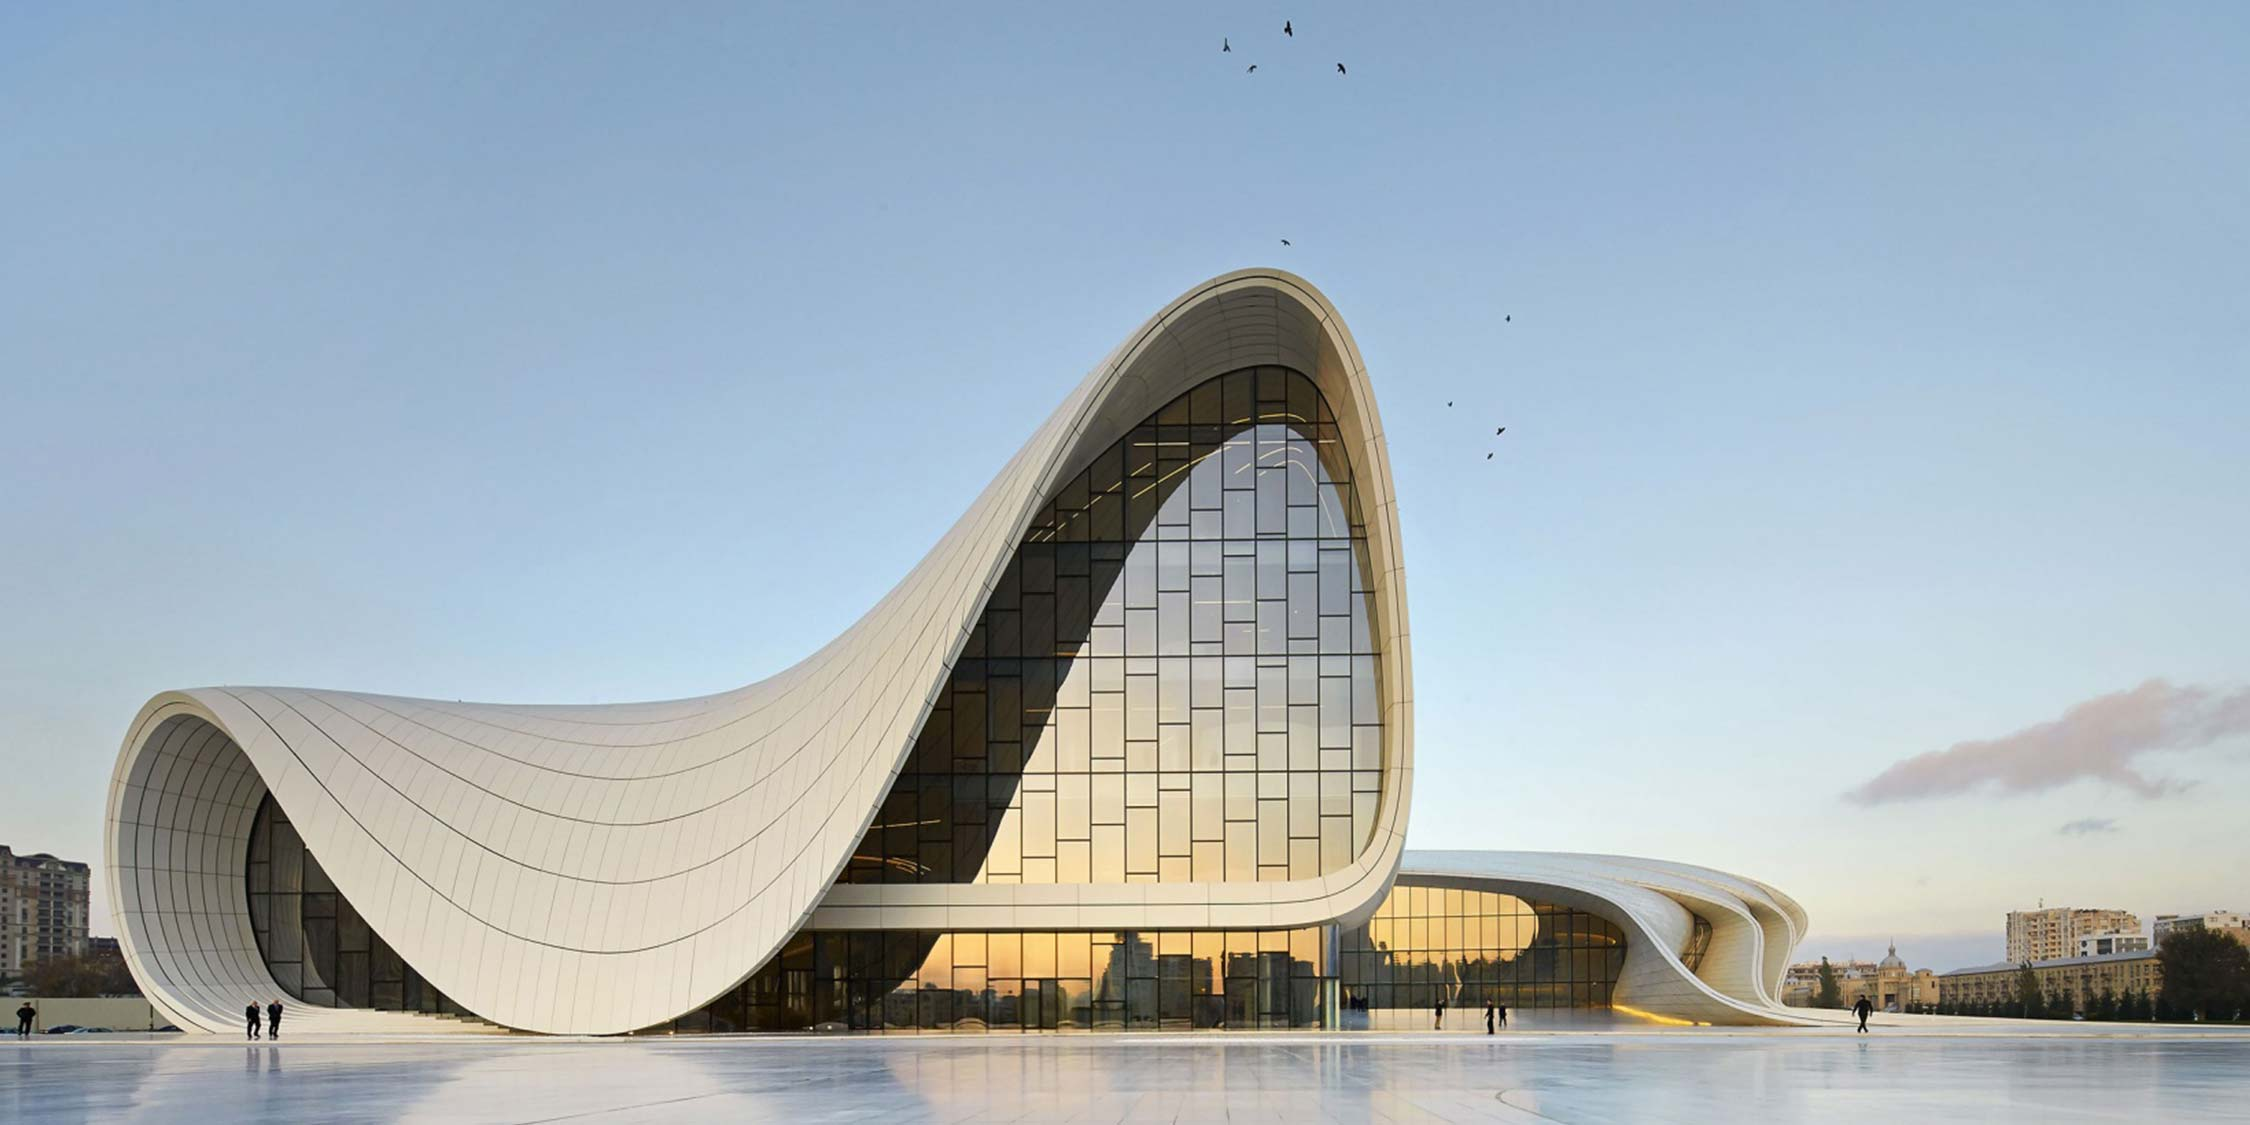 Arquitetura contemporânea, é cheia de absurdos? The Heydar Aliyev Center By Zaha Hadid. Blog Obra Atelier